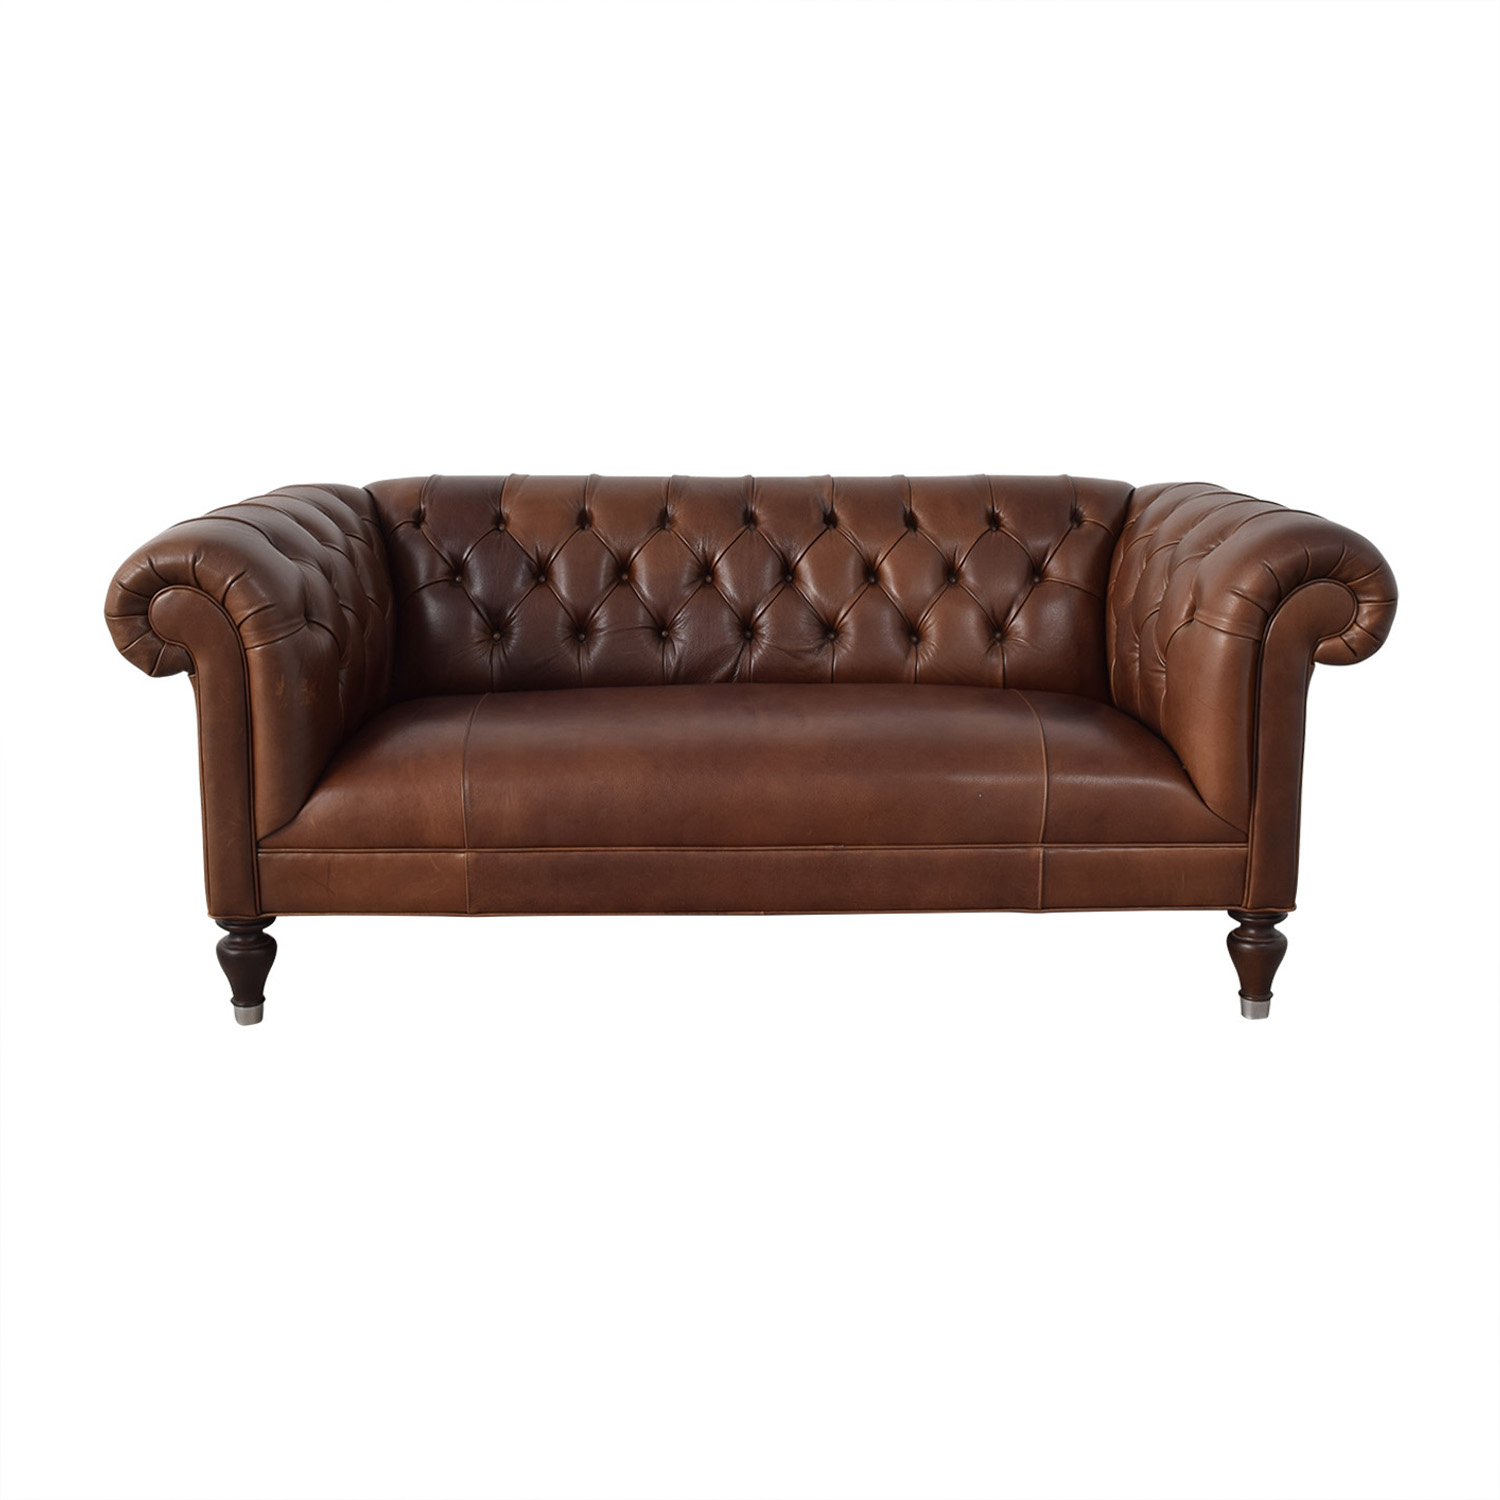 Mitchell Gold + Bob Williams Mitchell Gold + Bob Williams Chesterfield Cognac Tufted Sofa coupon